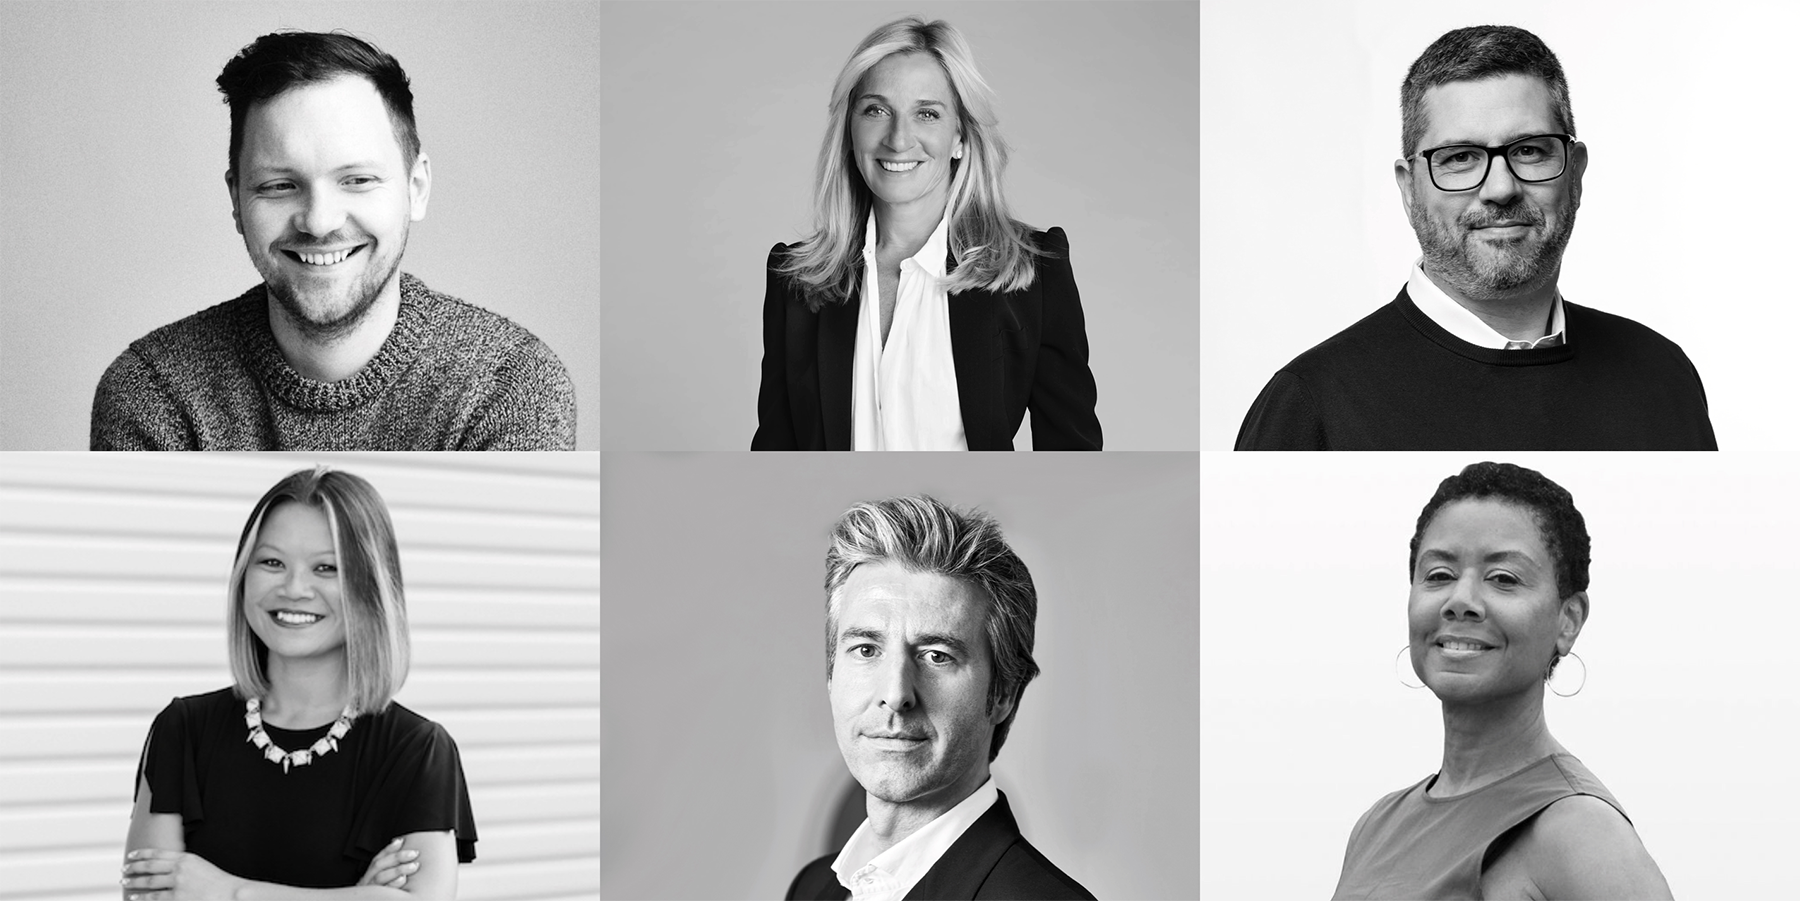 Fashion Industry HR moves Lisa Gersh Departs Alexander Wang, Catherine Lacase to Louis Vuitton, Alexander Fury to Financial Times